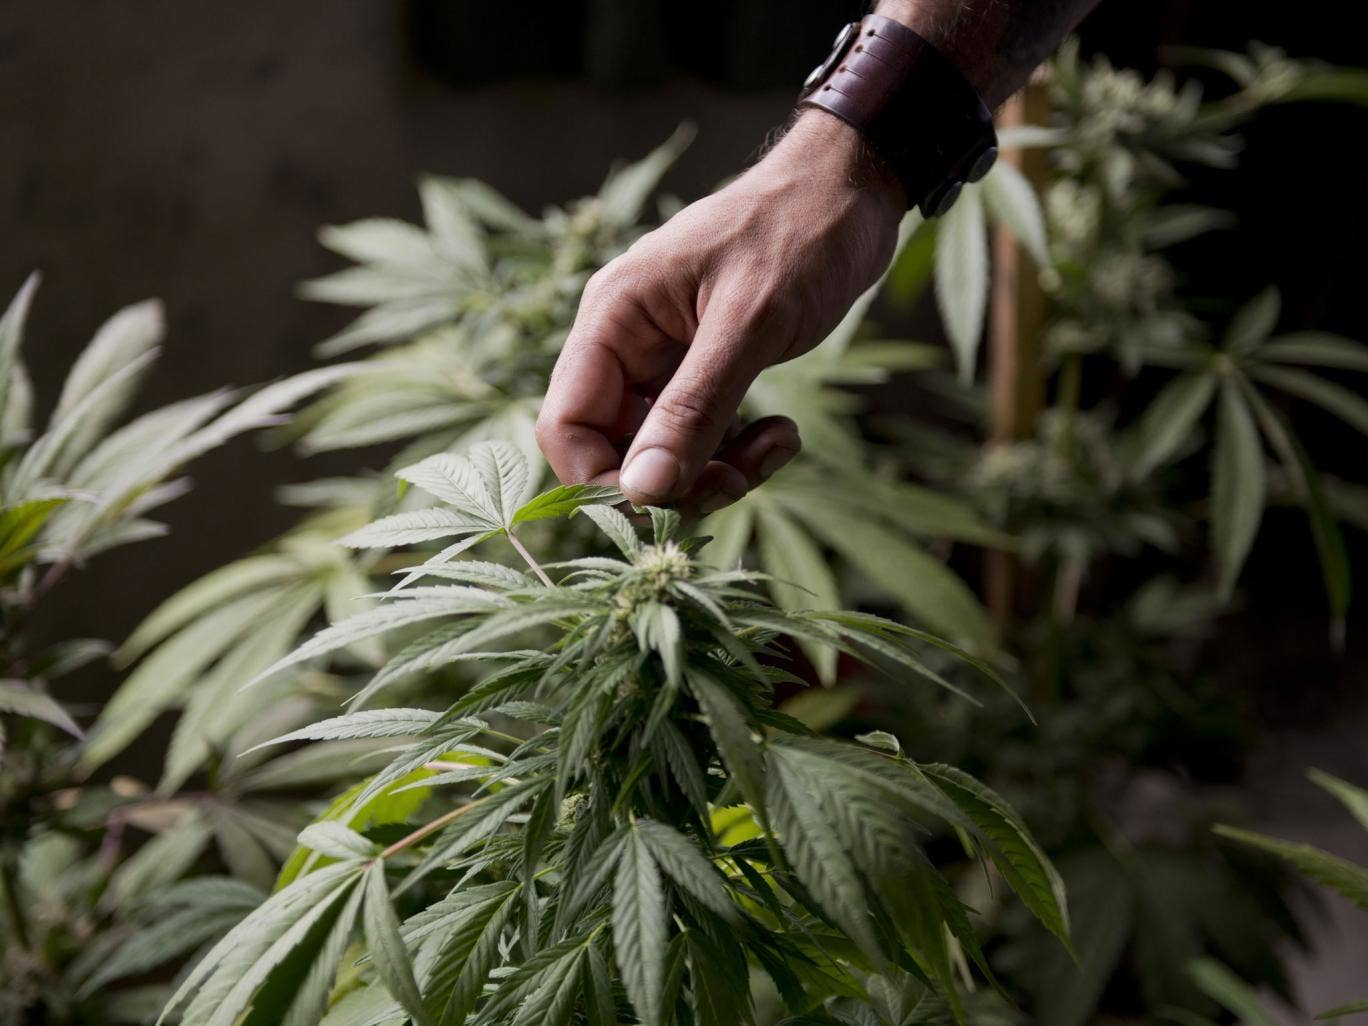 A marijuana grower checks the leaves of his marijuana plants for fungus, on the outskirts of Montevideo, Uruguay